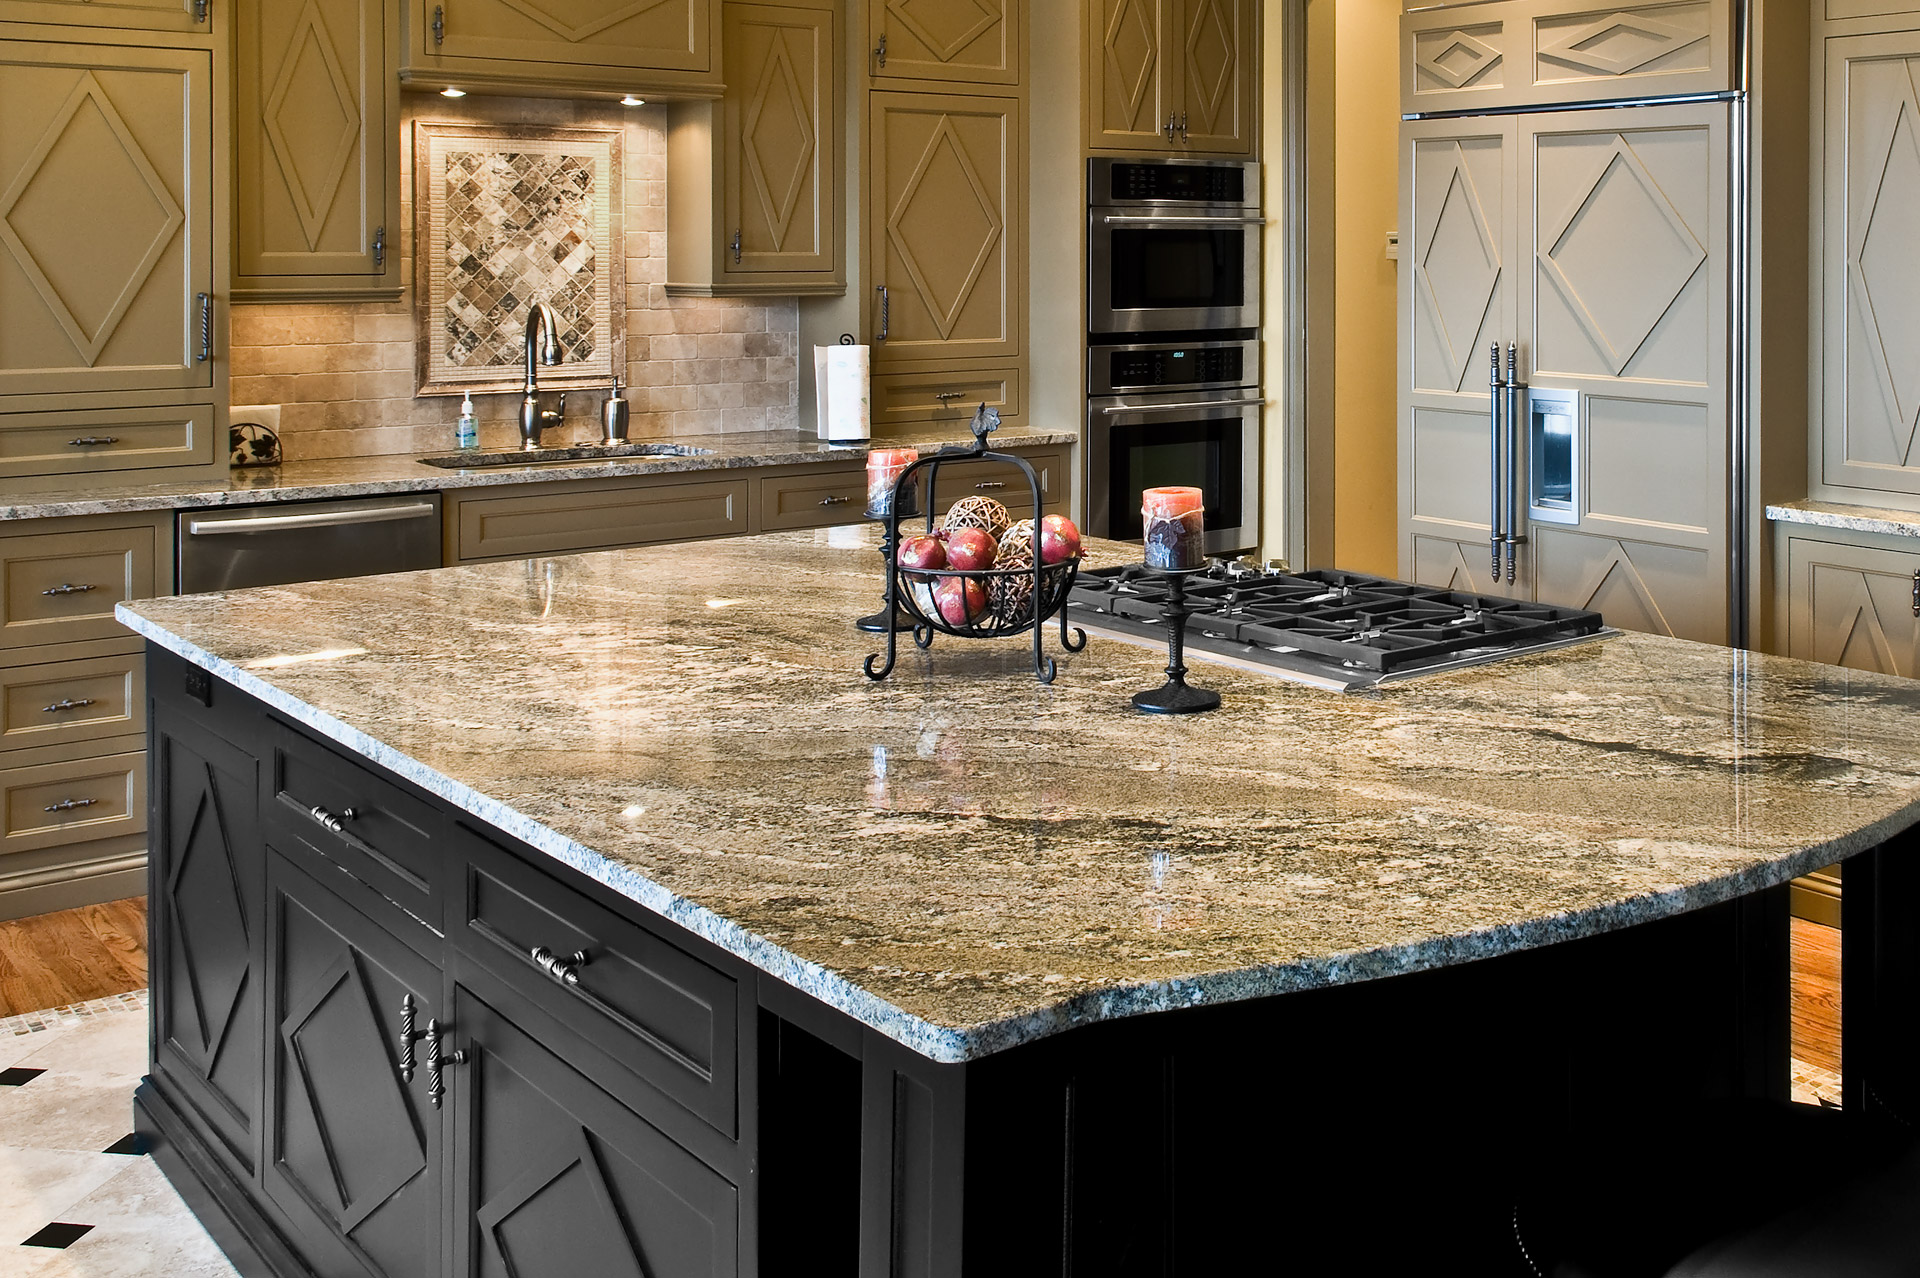 Kitchen cabinets bx ny - Stone Projects